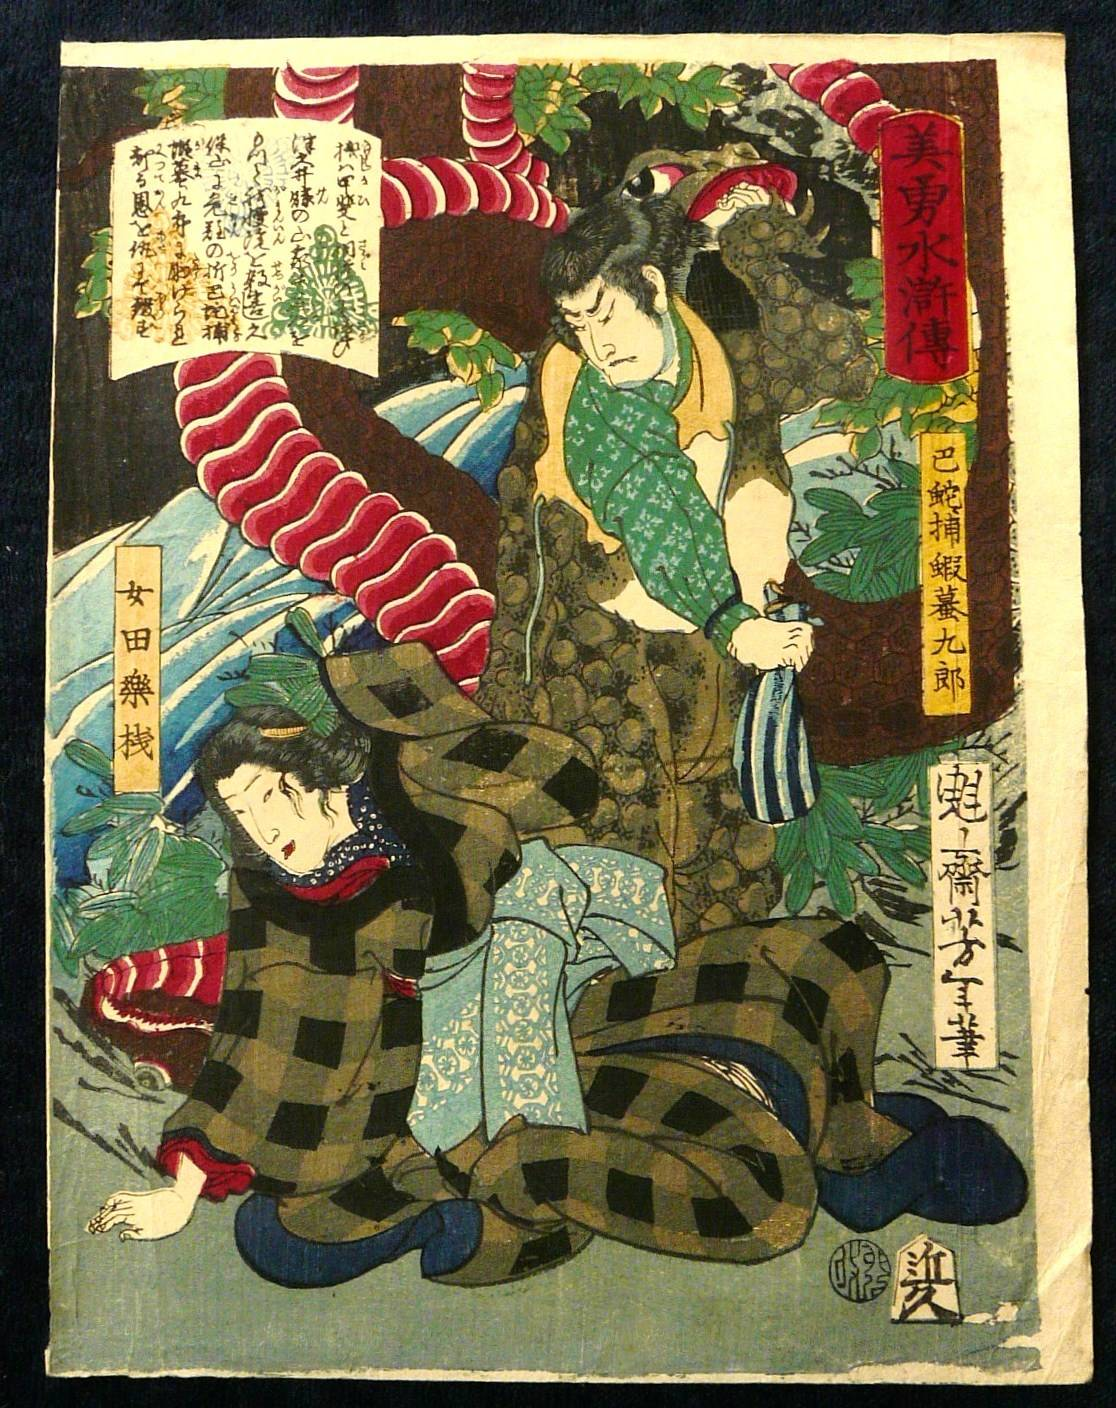 TAISO YOSHITOSHI: #P3976 THE SNAKE CHARMER GAMAKURO ROBS THE FEMALE DANCER KAKEHASHI, No 47 IN THE SERIES BIYU SUIKODEN